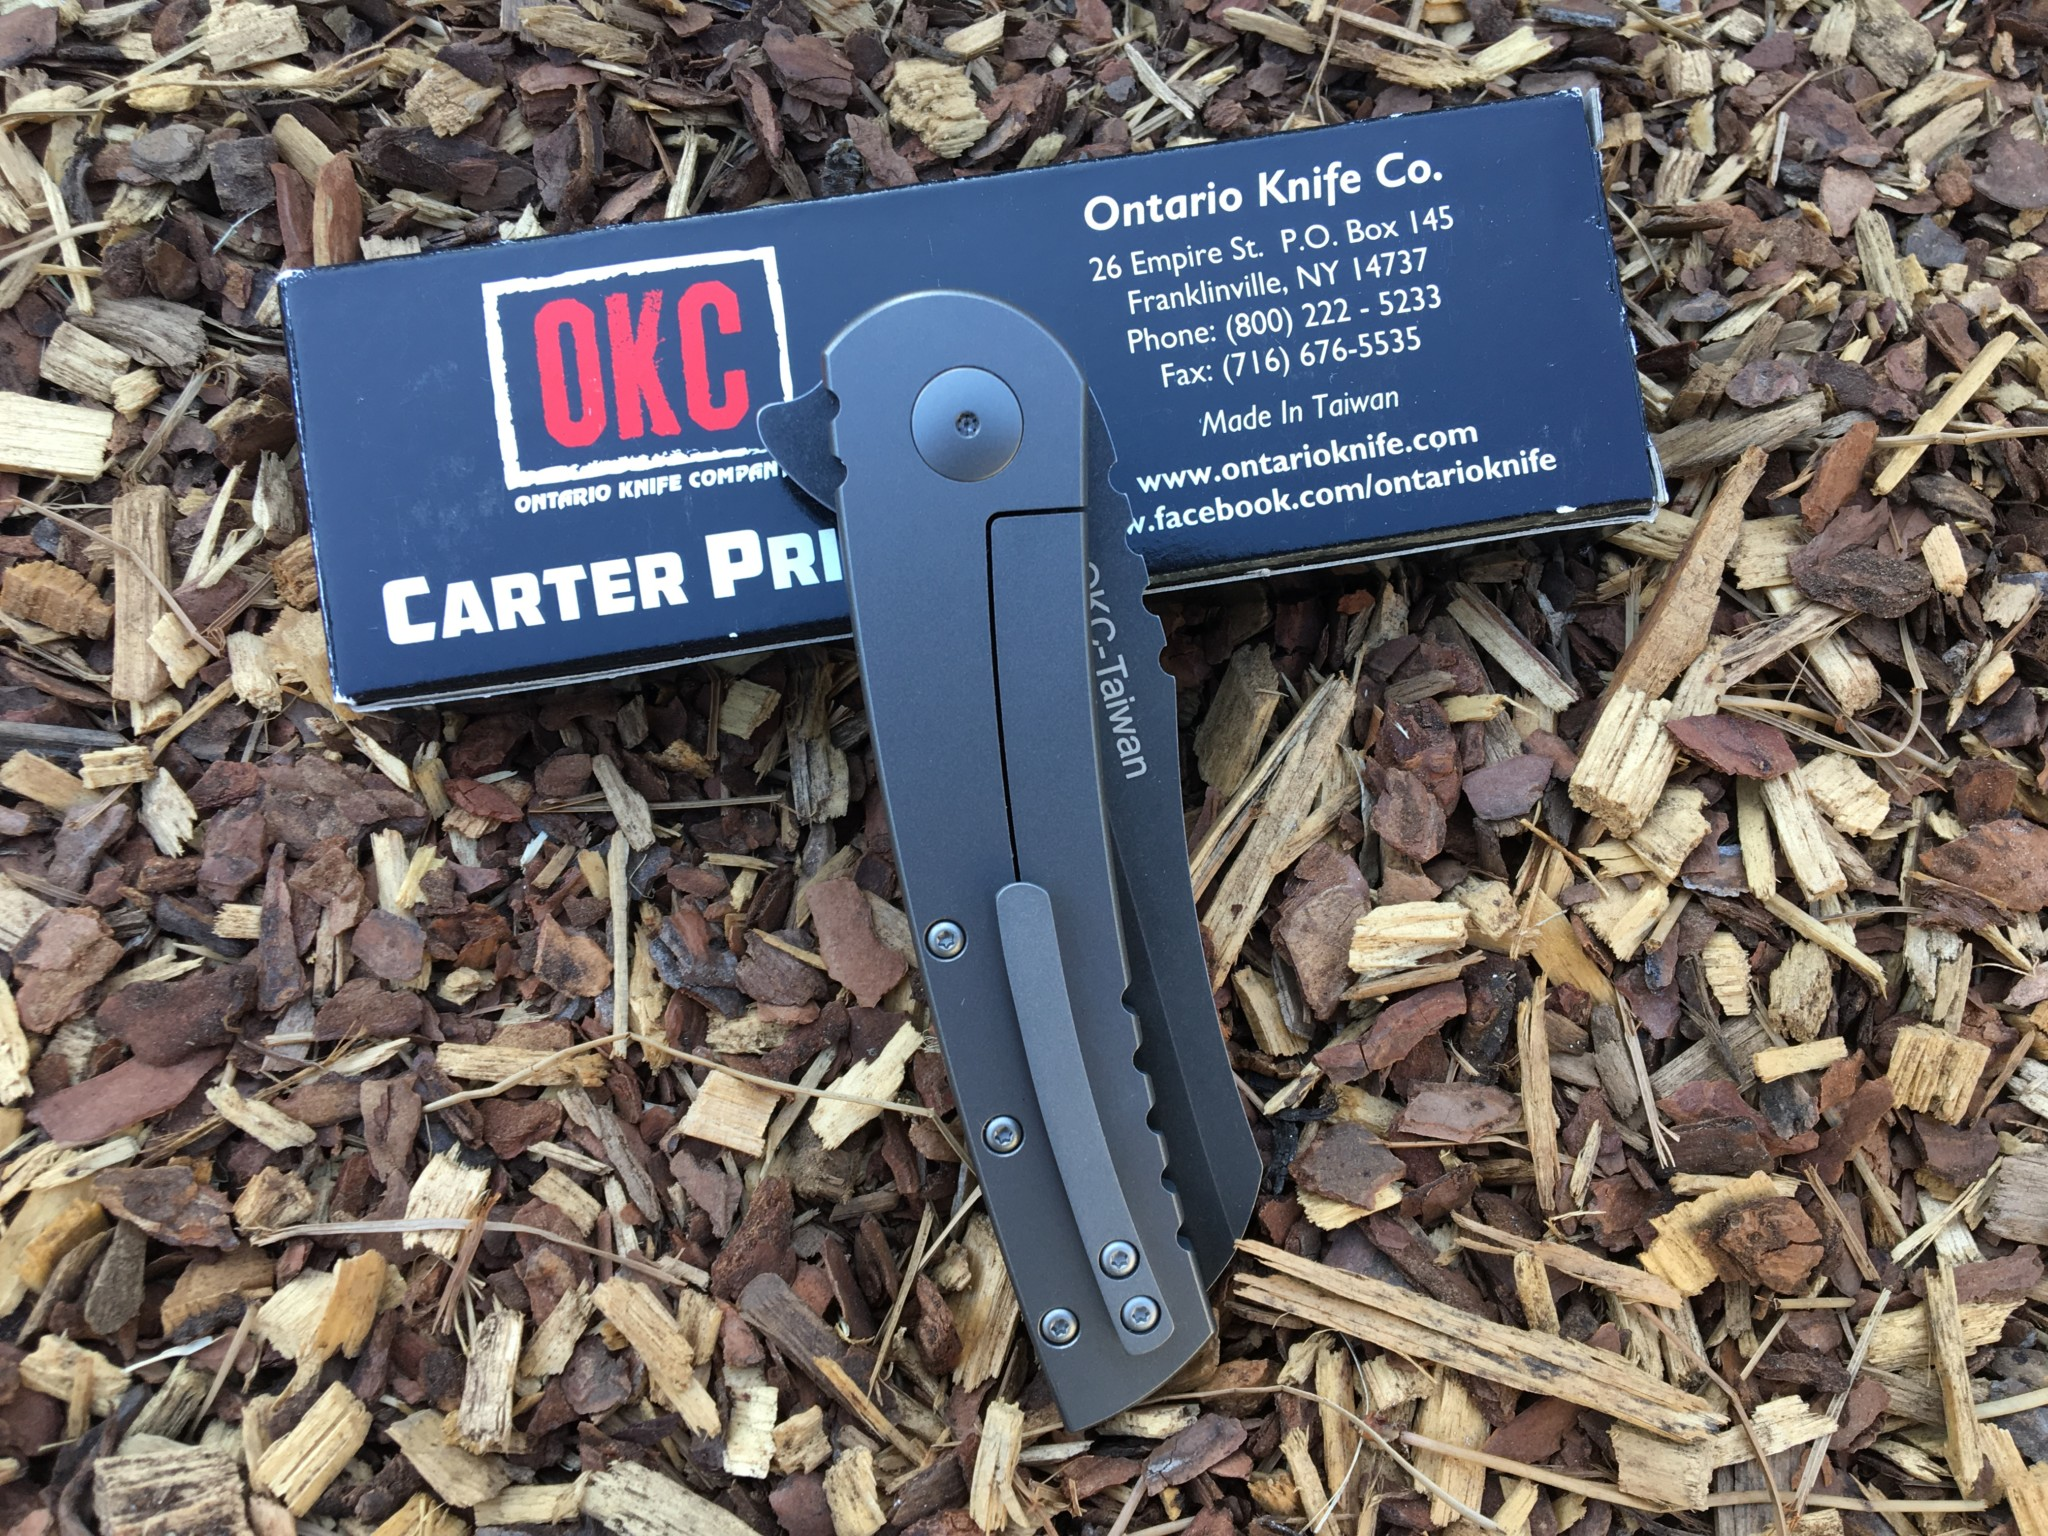 OKC's Carter Prime Knife could be yours...